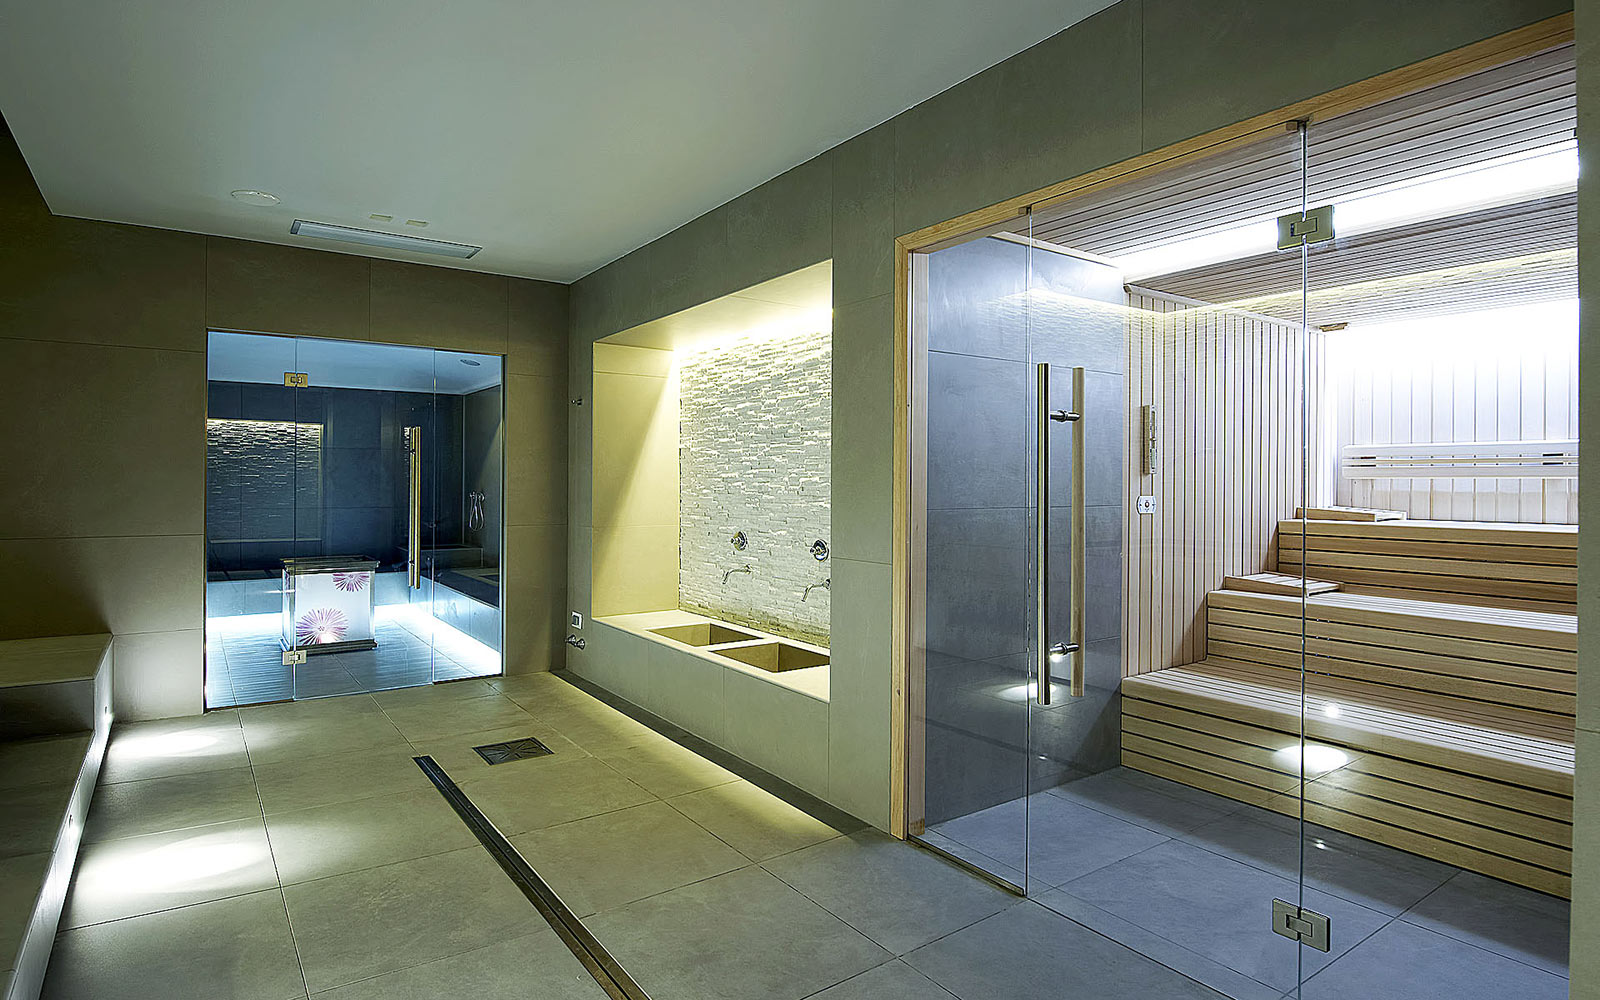 <br> HOTEL LE GROTTE - GENGA